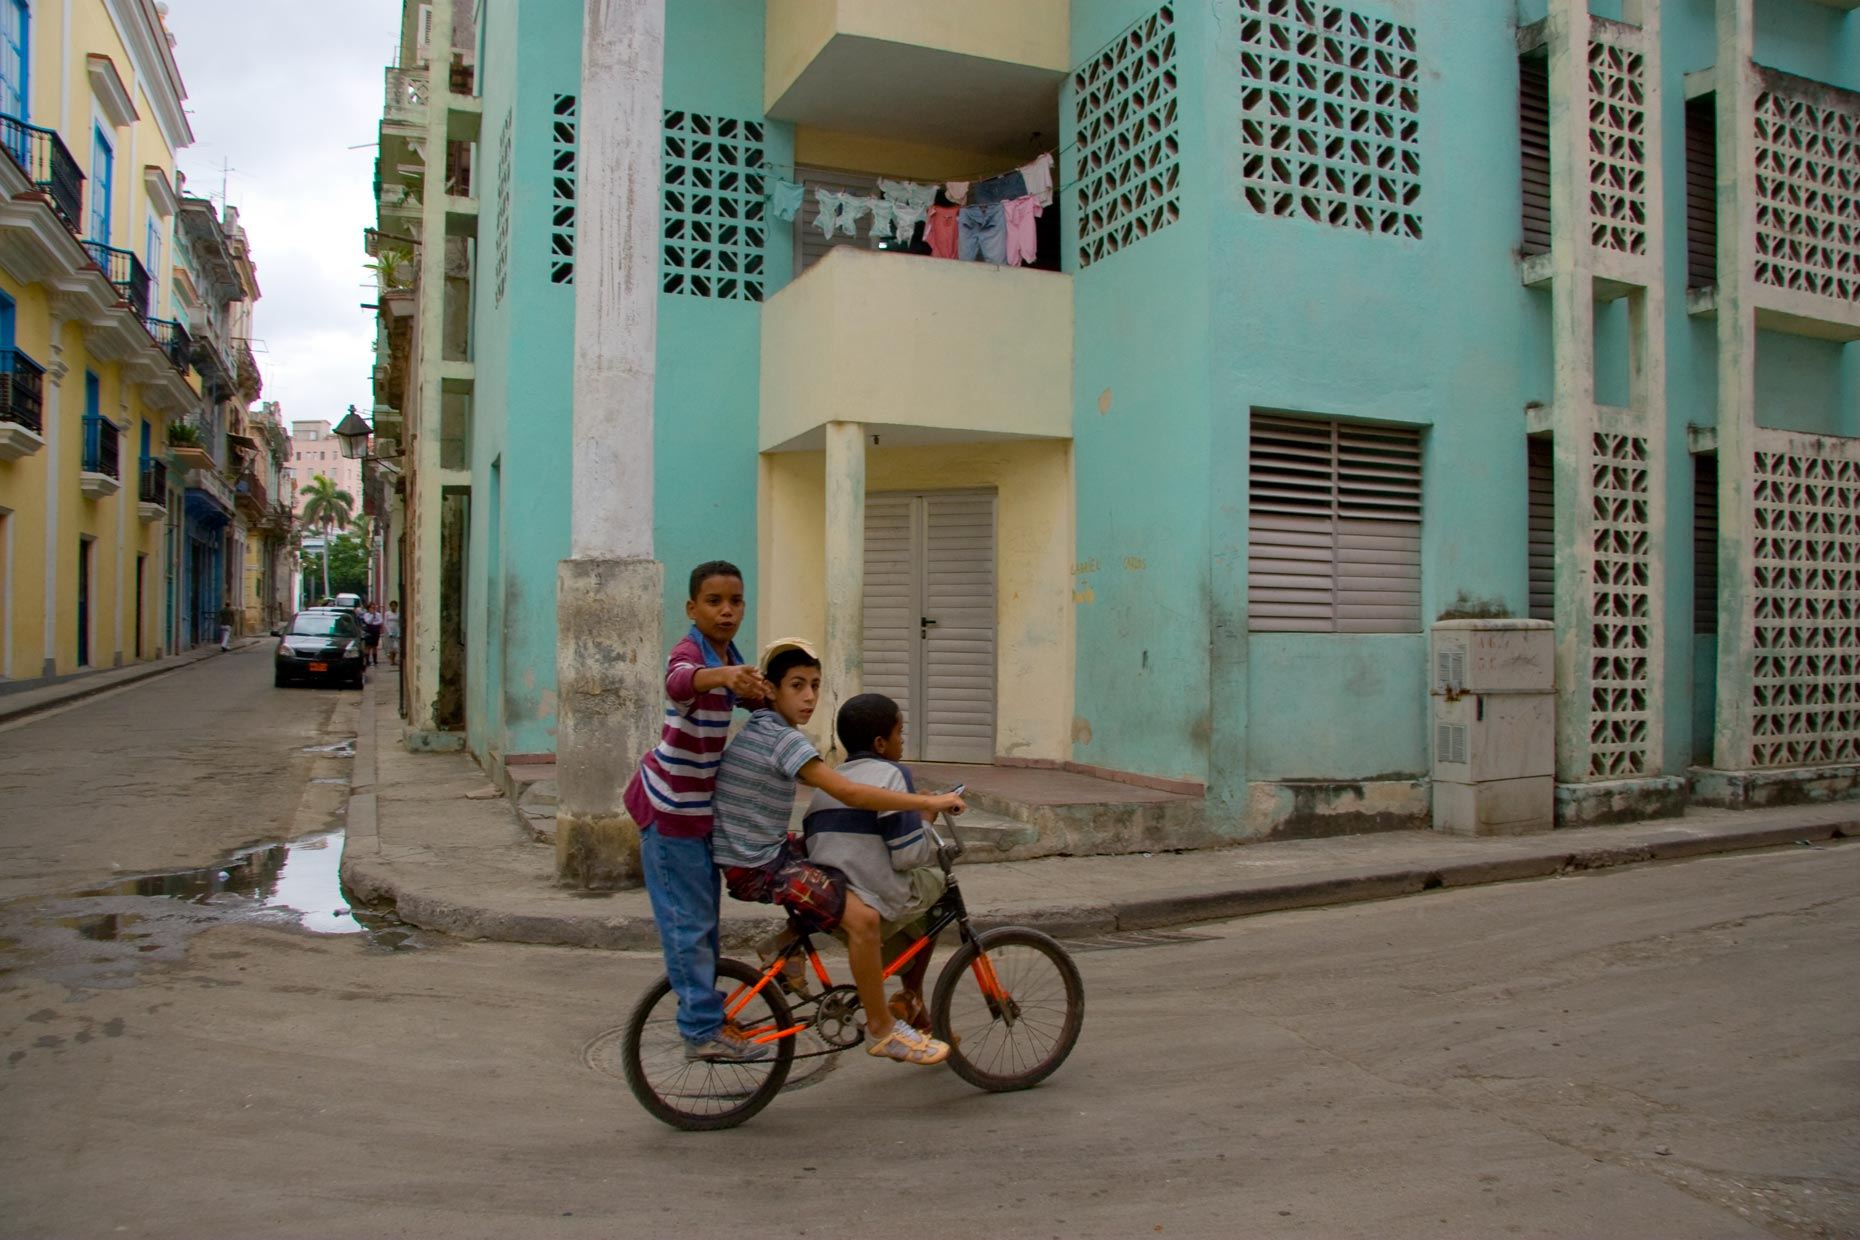 015-REV_kids-on-bike